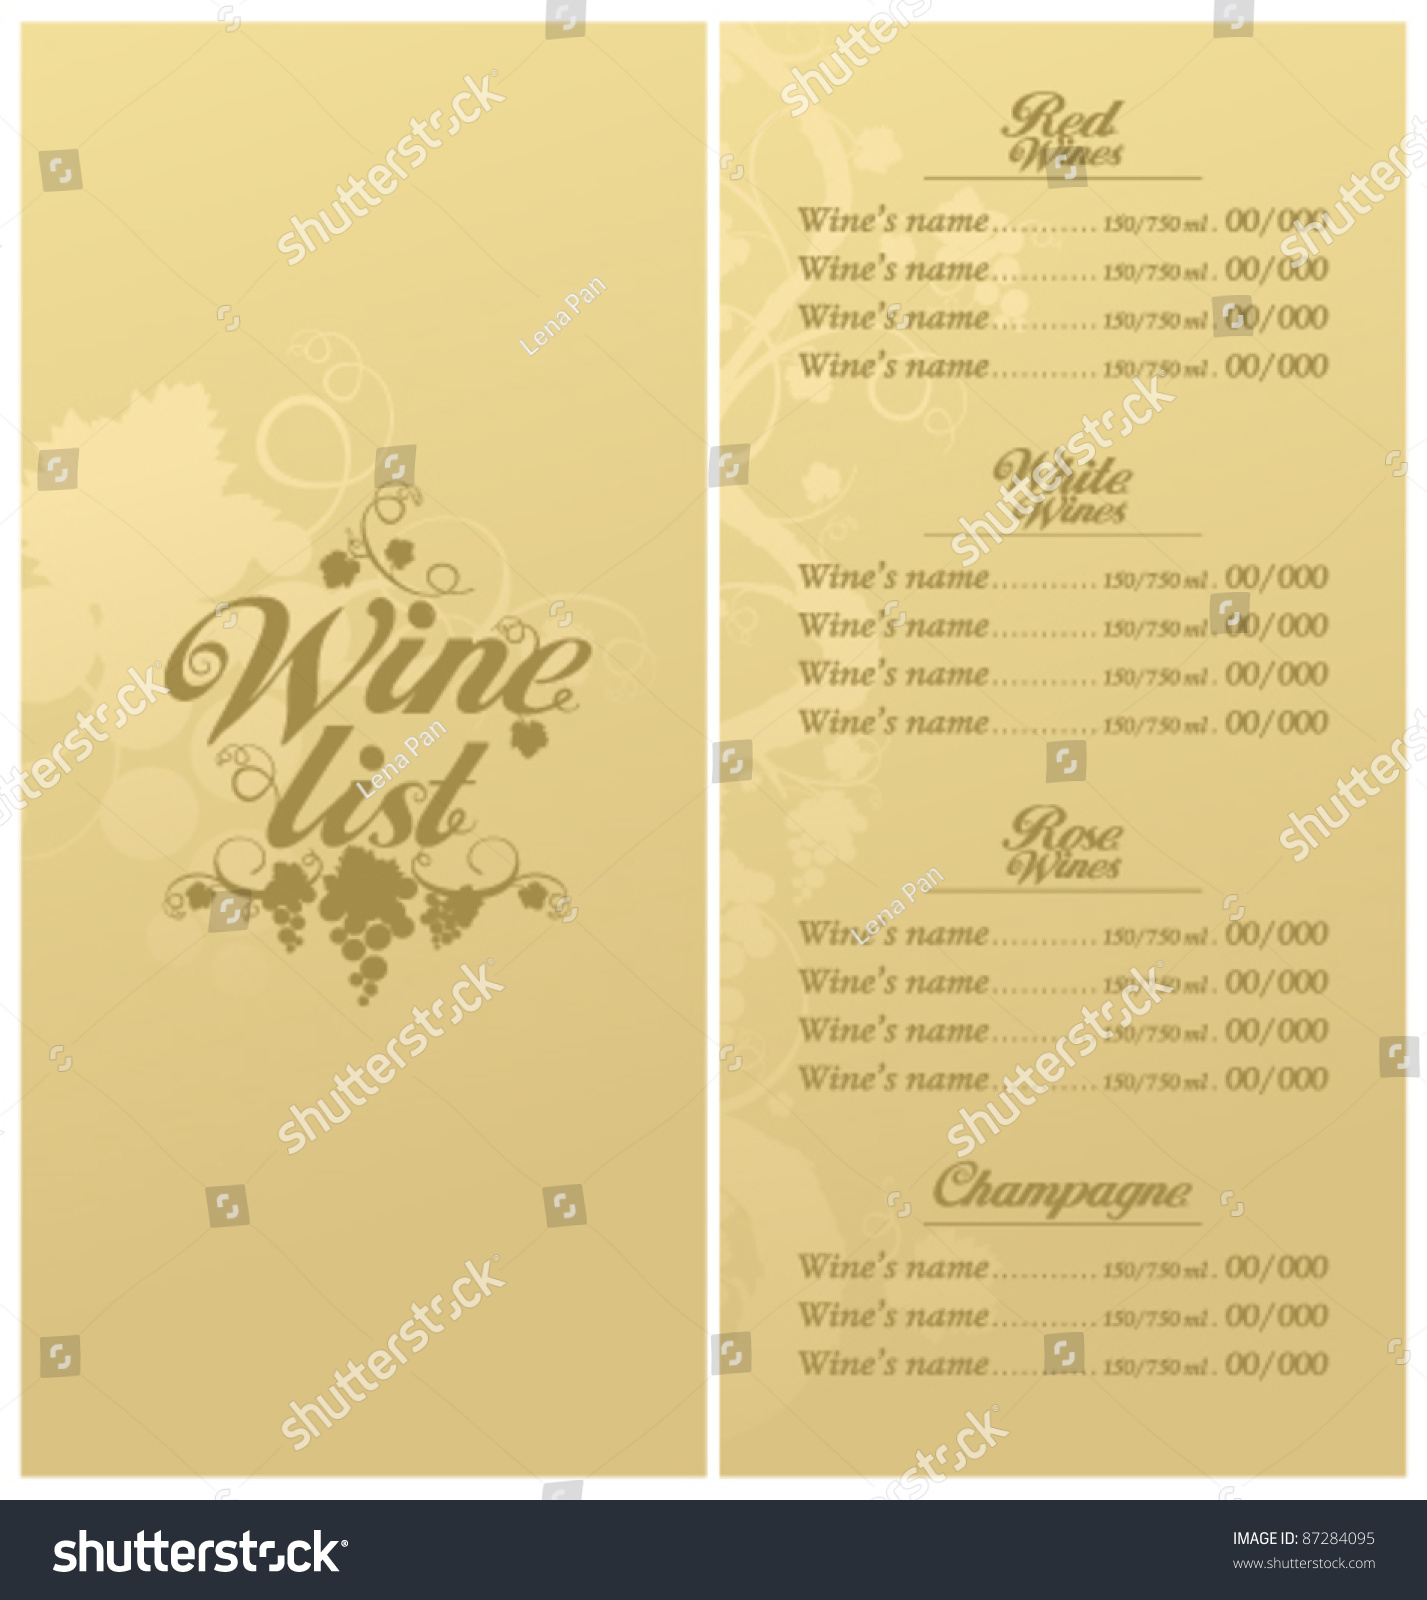 Wine list menu card design template stock vector 87284095 for Wine dinner menu template